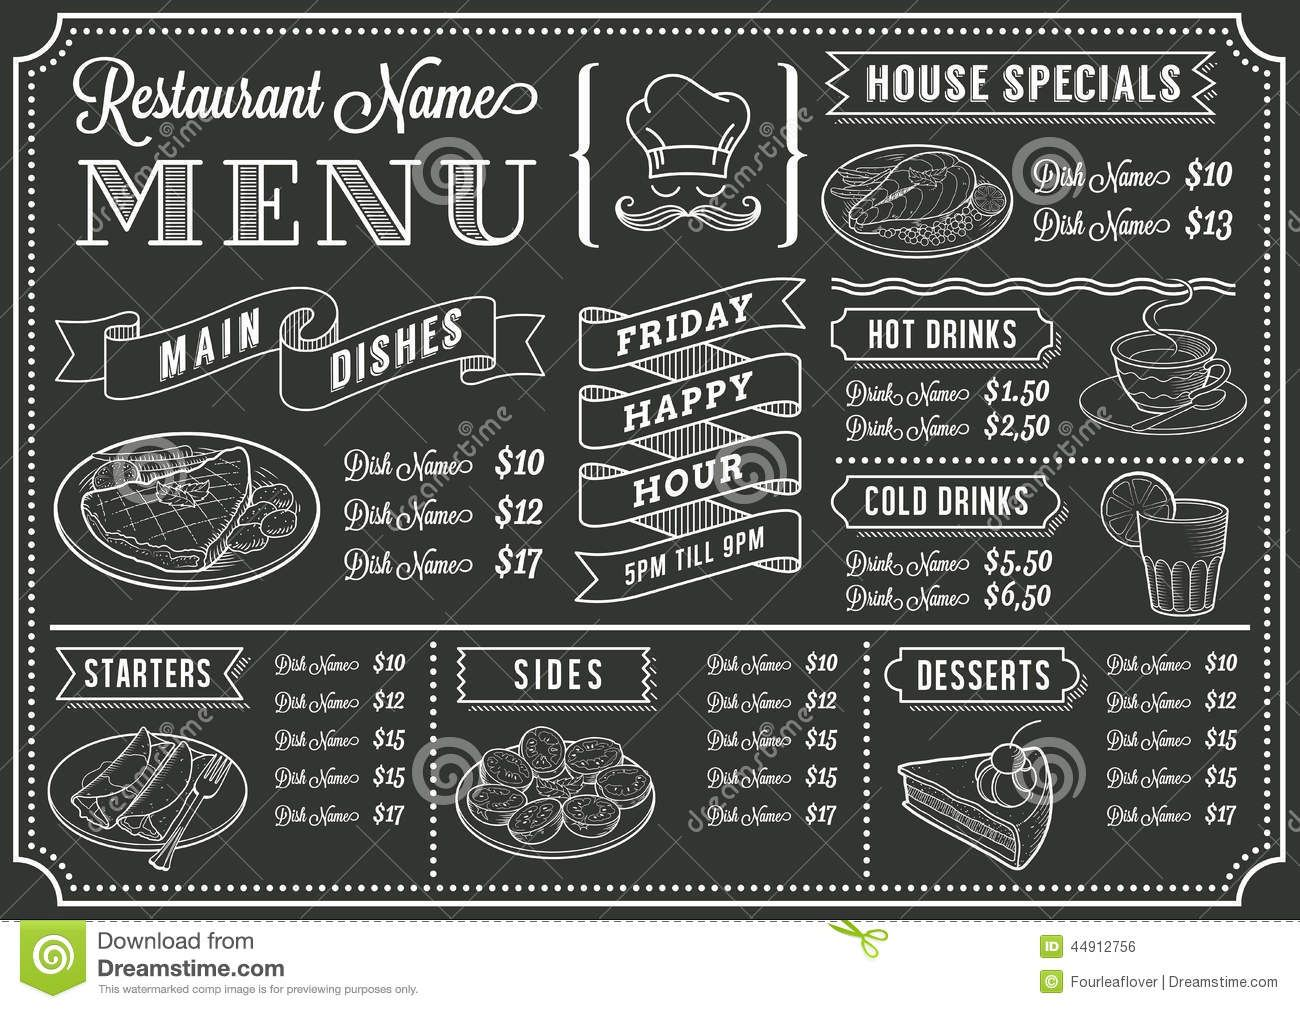 Restaurant Food Menu Design with Chalkboard Background | Classroom ...